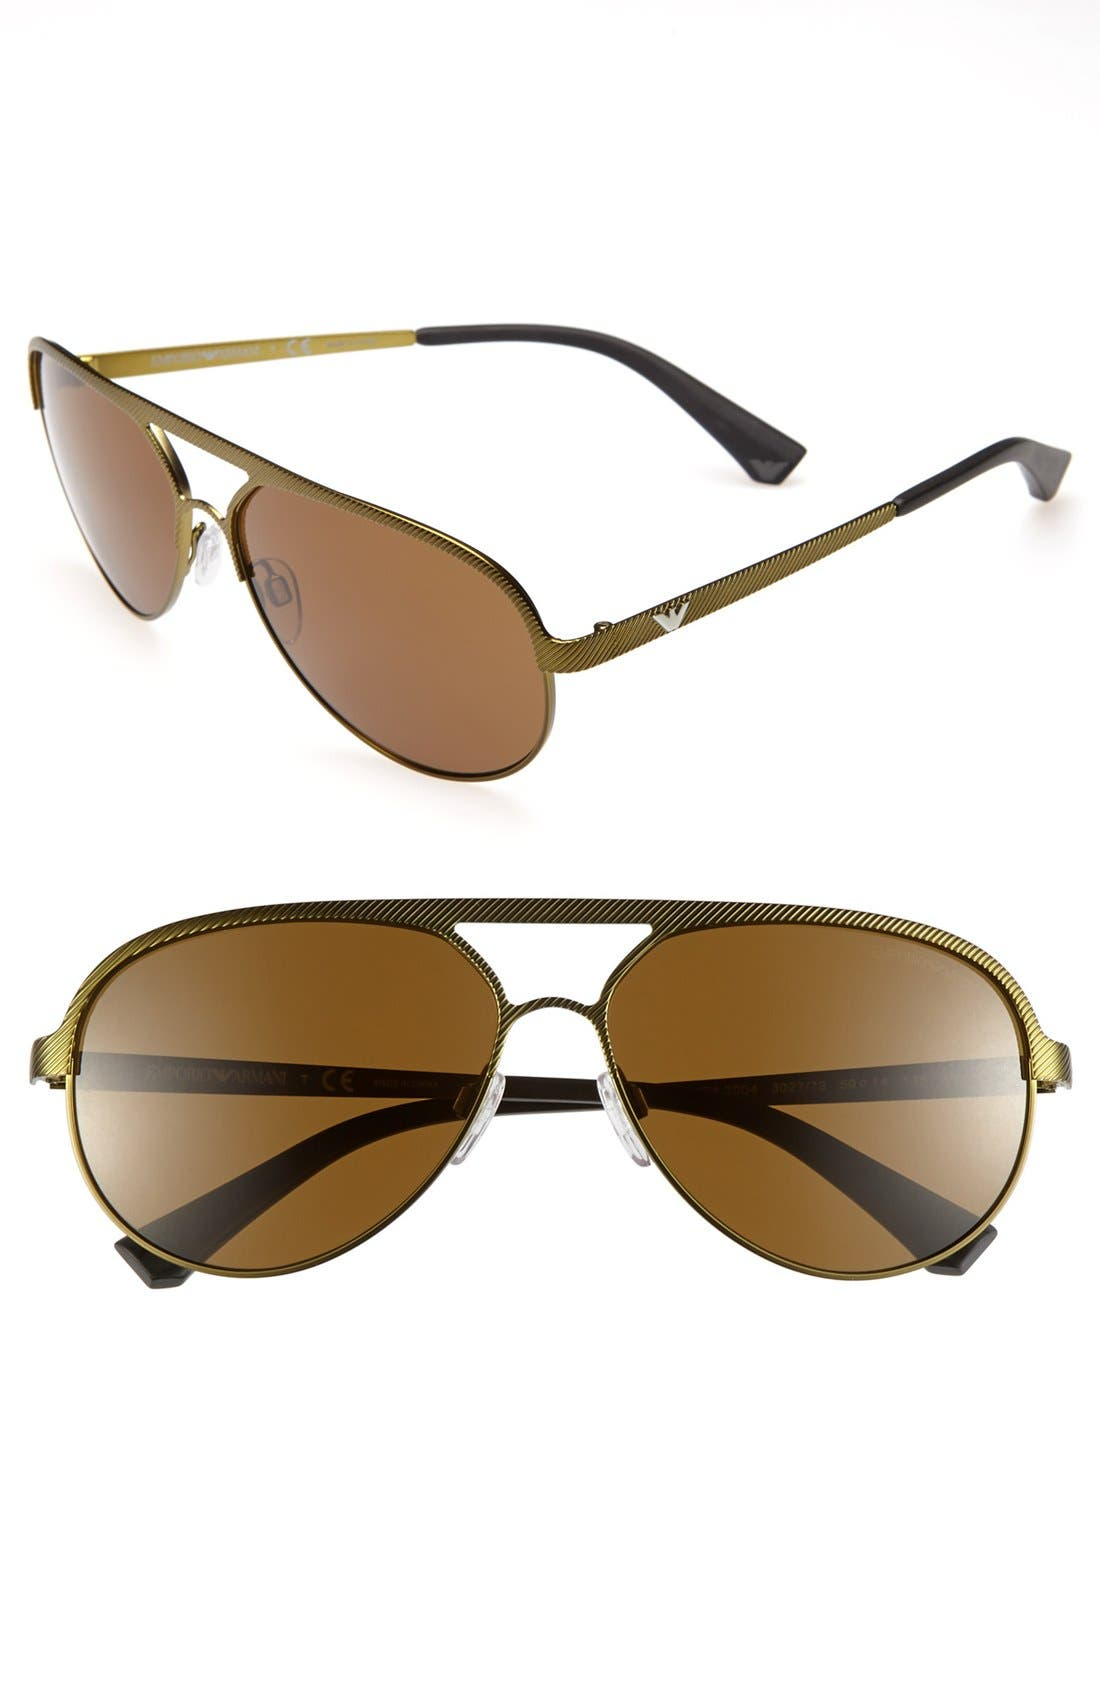 Alternate Image 1 Selected - Emporio Armani 59mm Aviator Sunglasses